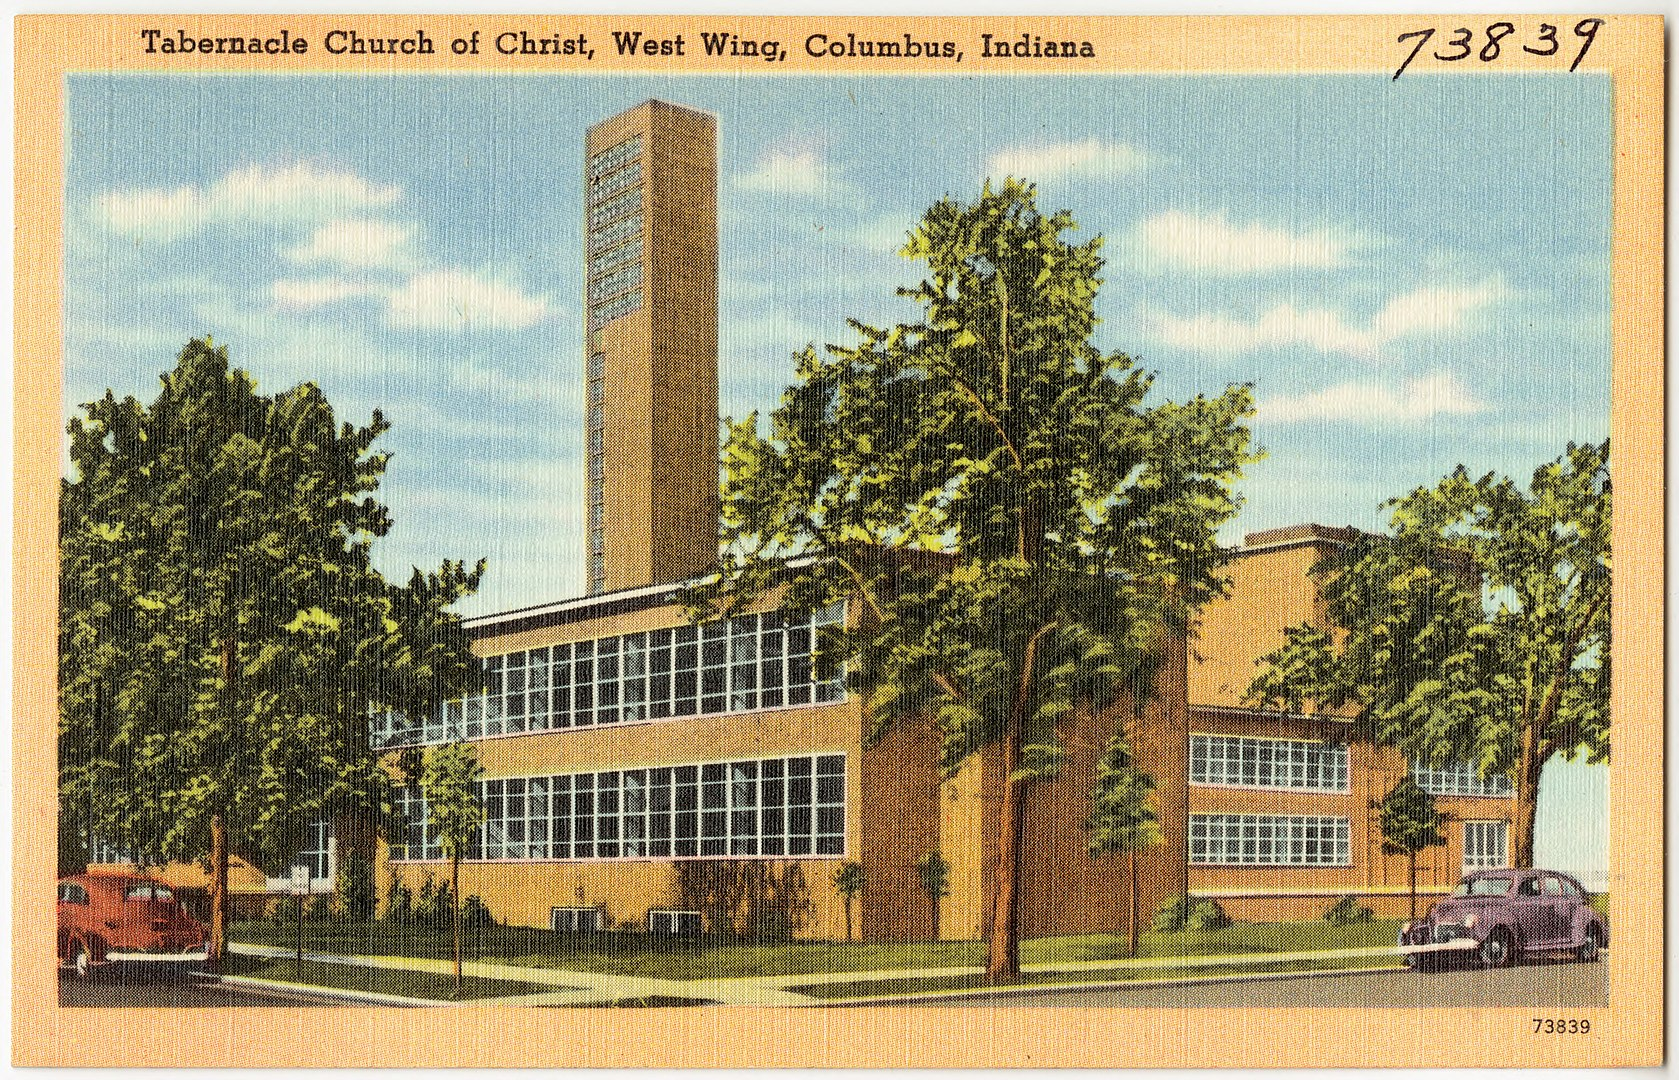 vintage postcard of modernist First Christian Church